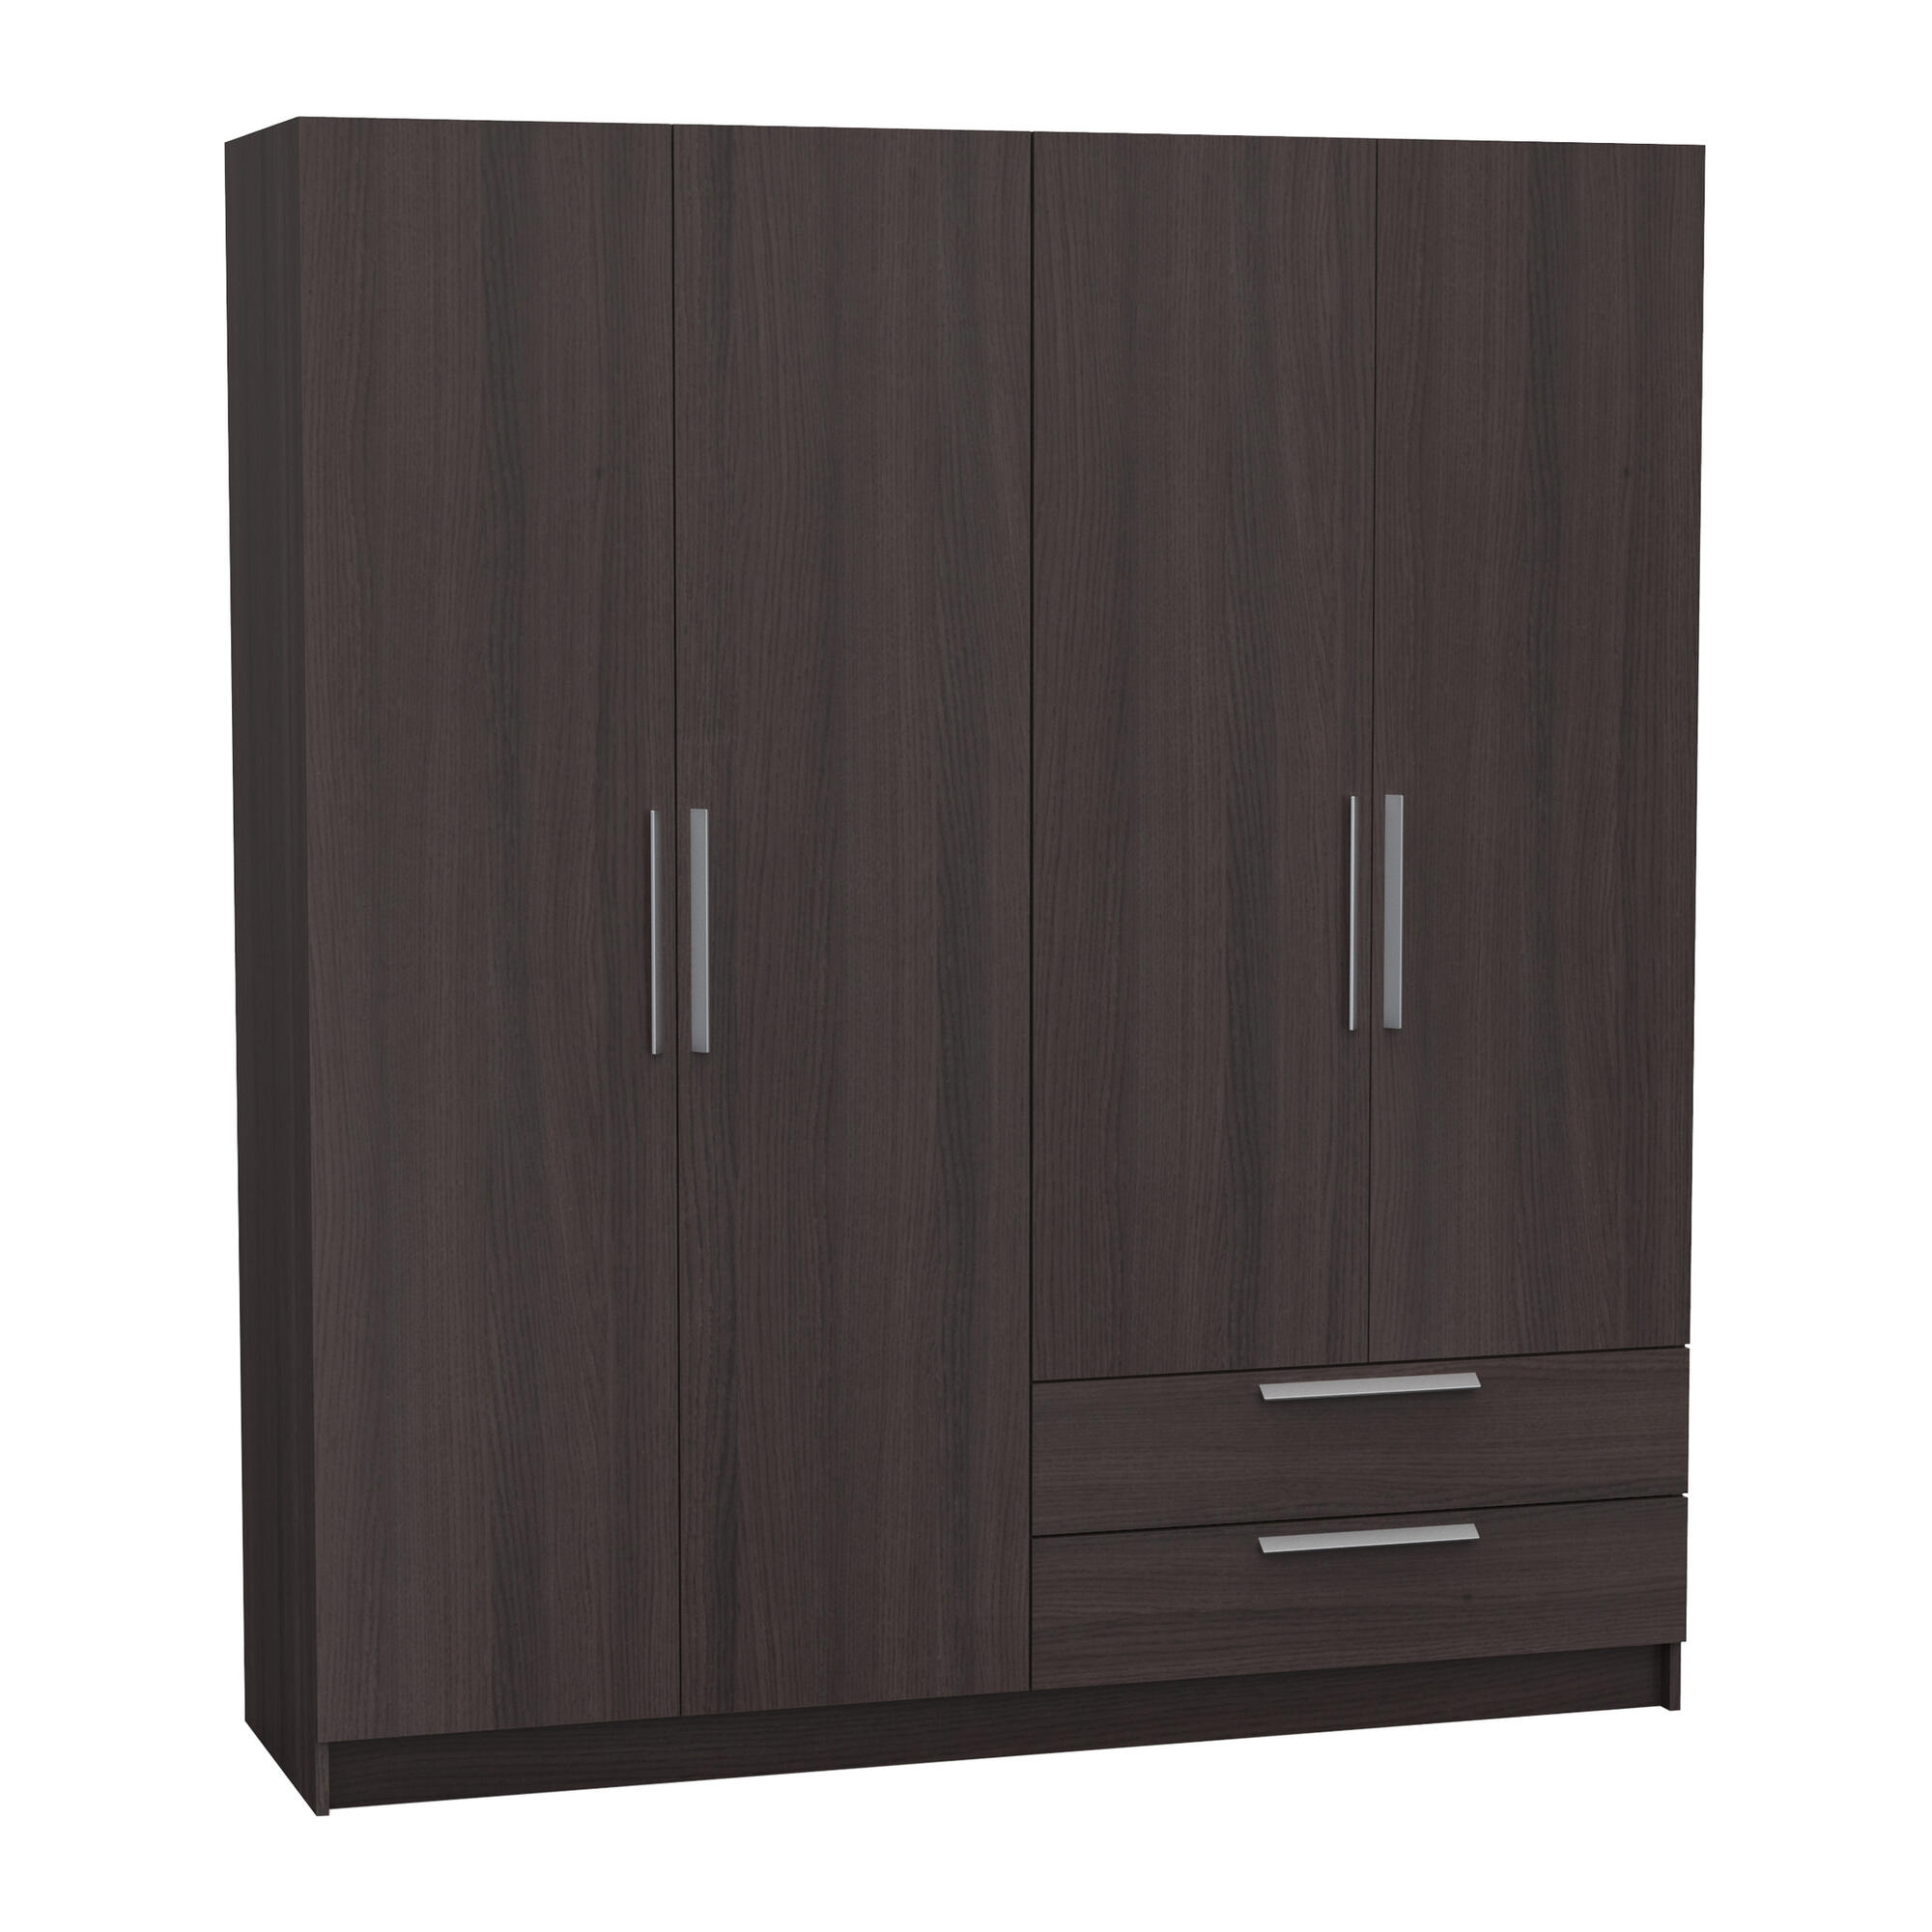 WARDROBE 4 DOORS +  2 DRAWERS OAK